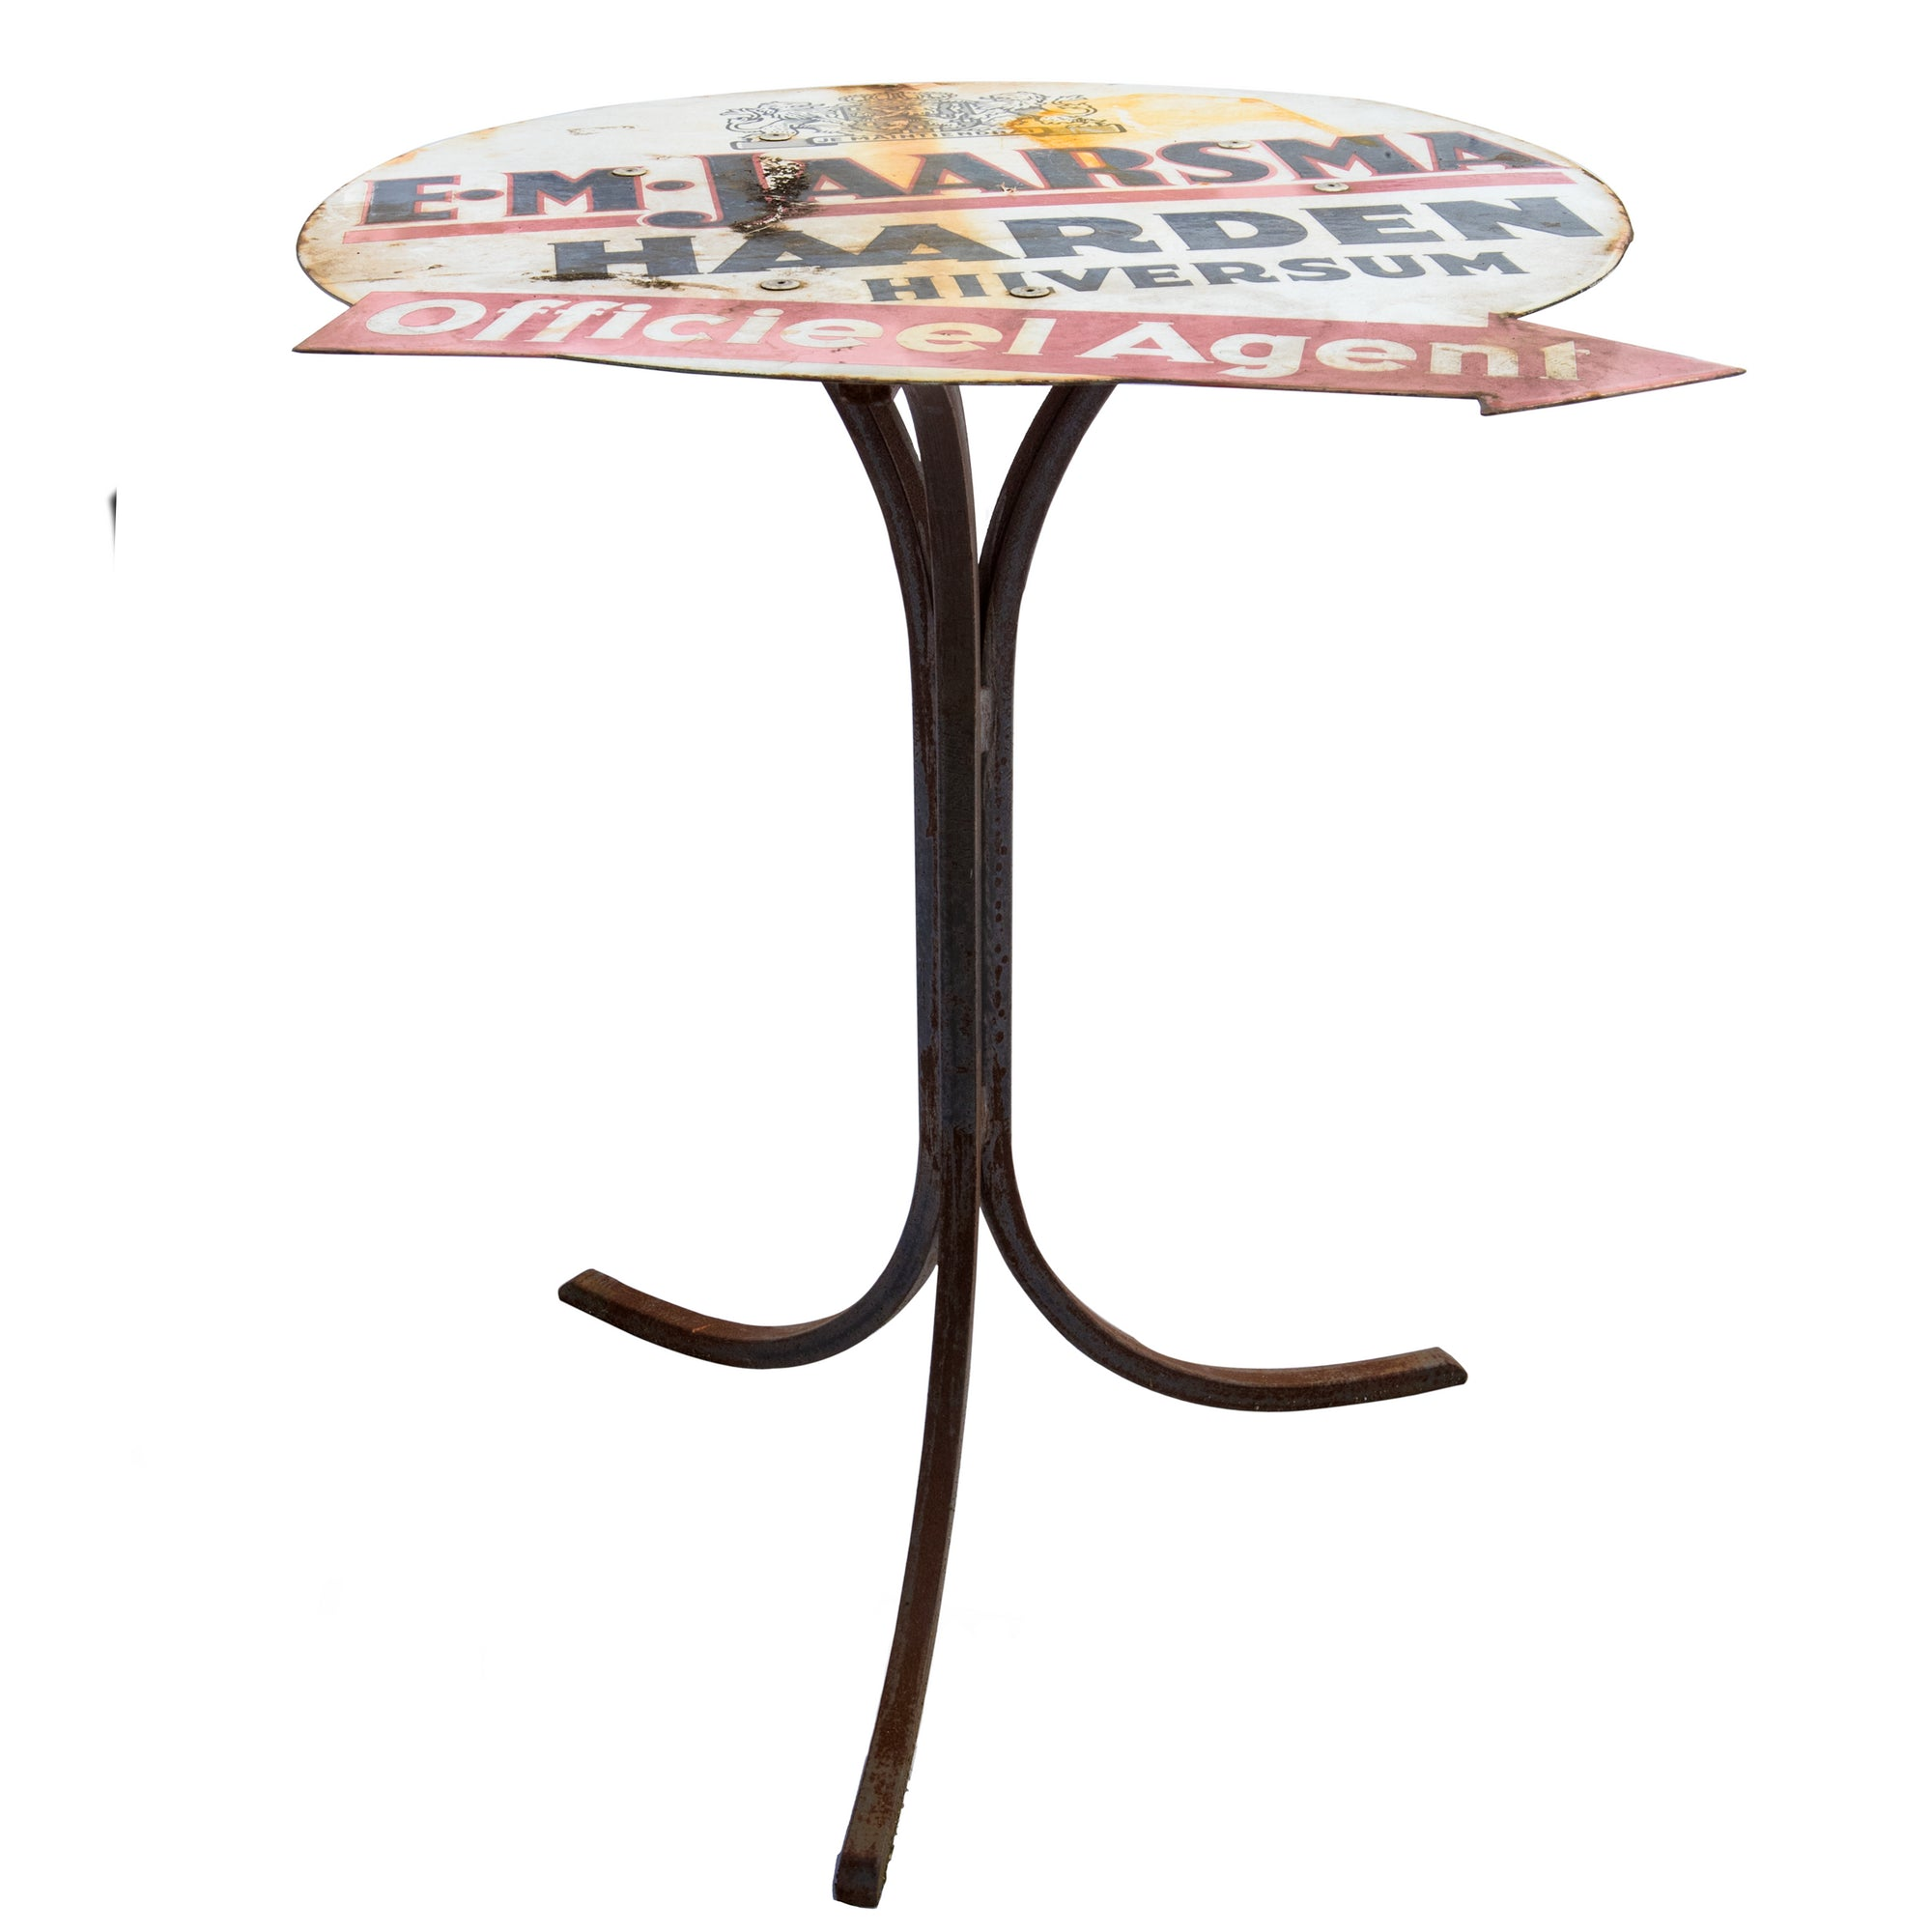 Upcycled Metal Garden Table - architectural-forum